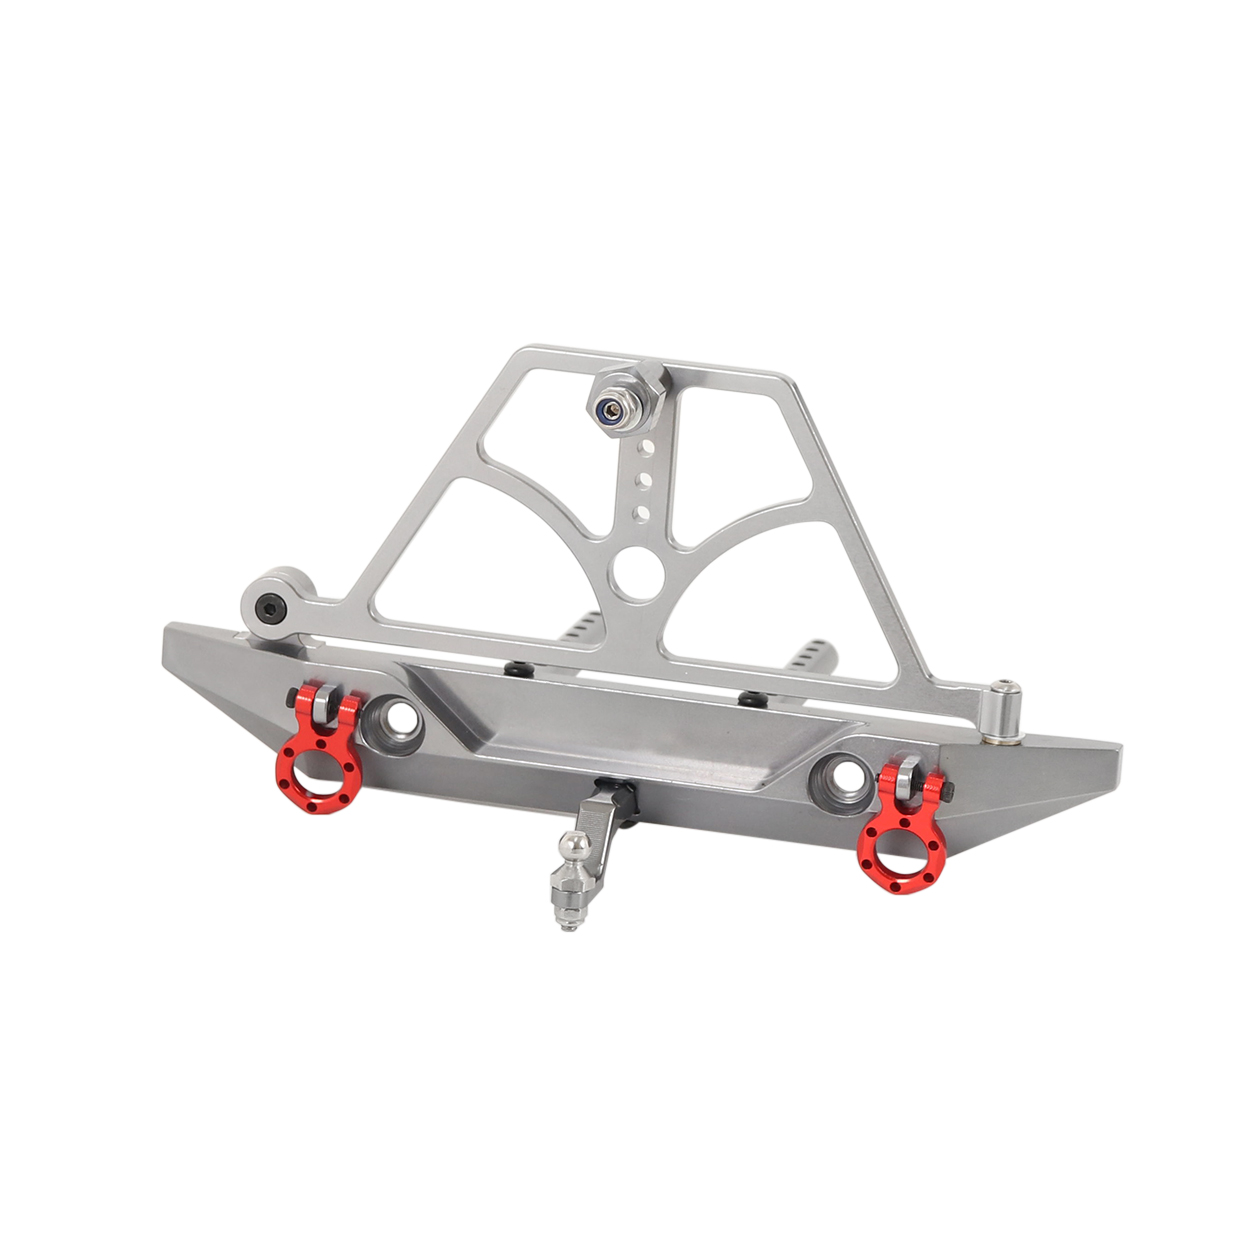 Aluminum Alloy RC Rear Bumper With Spare Tire Rack Winch Hook For 1/10 RC Crawler Car Axail SCX10 RC 4WD D90 Upgrade Part Titanium